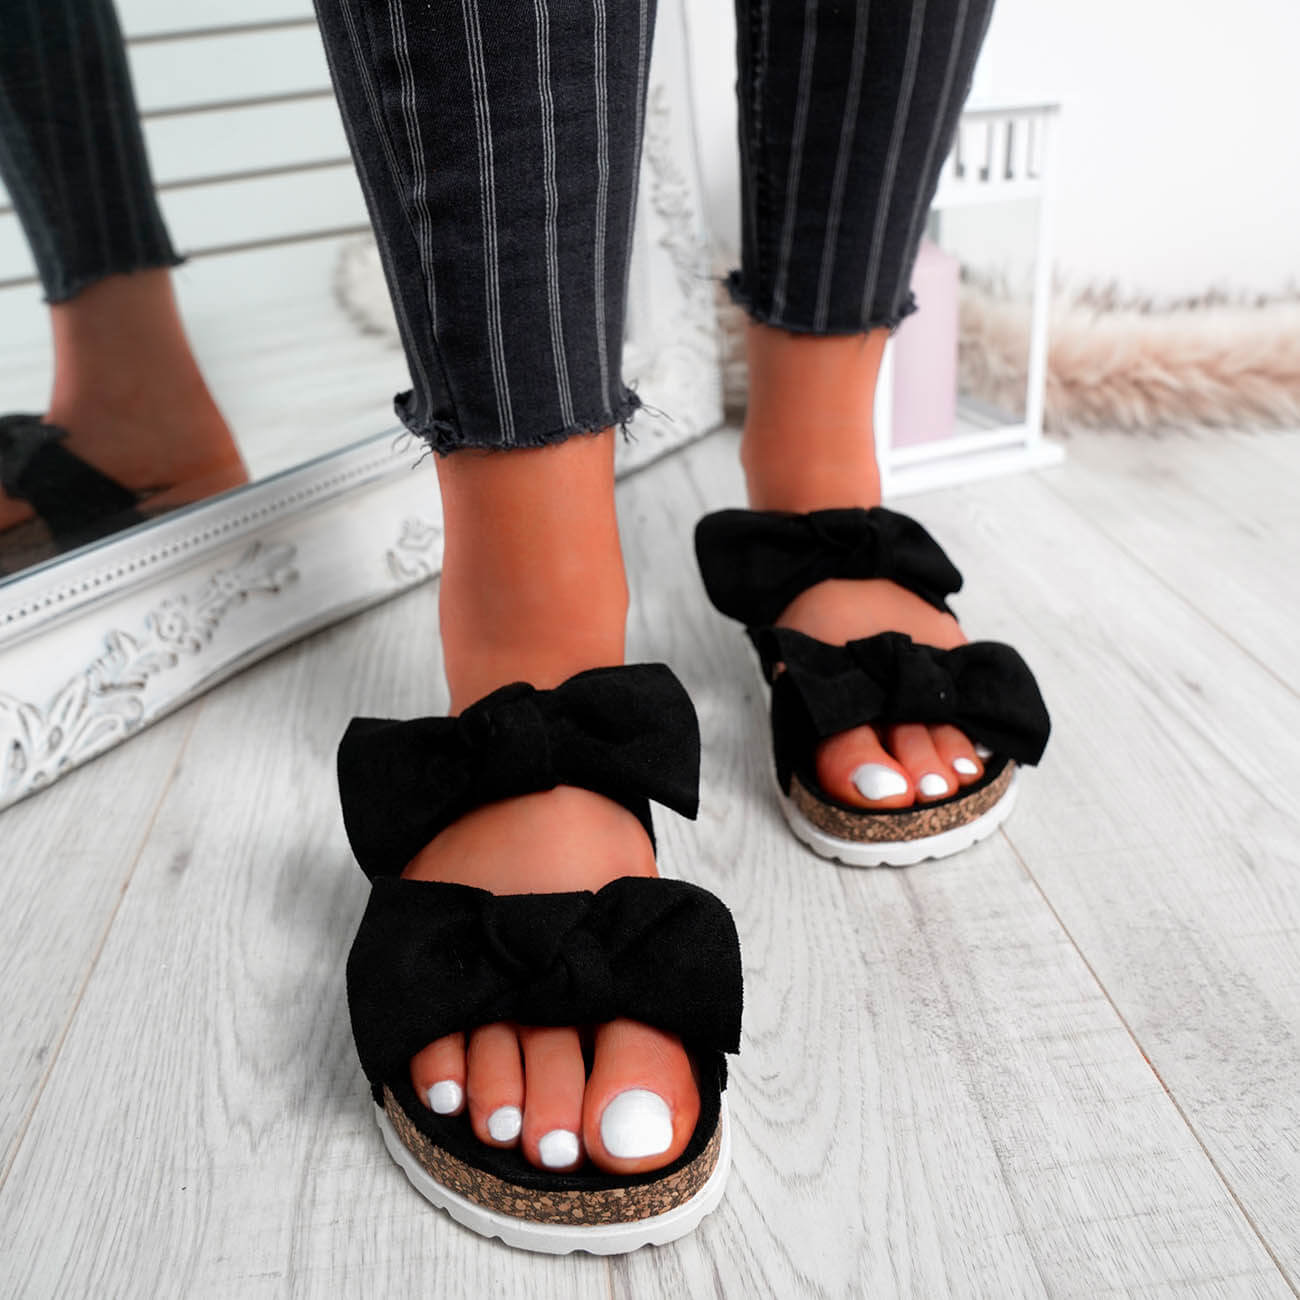 WOMENS-LADIES-PEEP-TOE-SLIP-ON-DOUBLE-BOW-FLAT-SANDALS-PARTY-CLUB-SUMMER-SHOES thumbnail 12